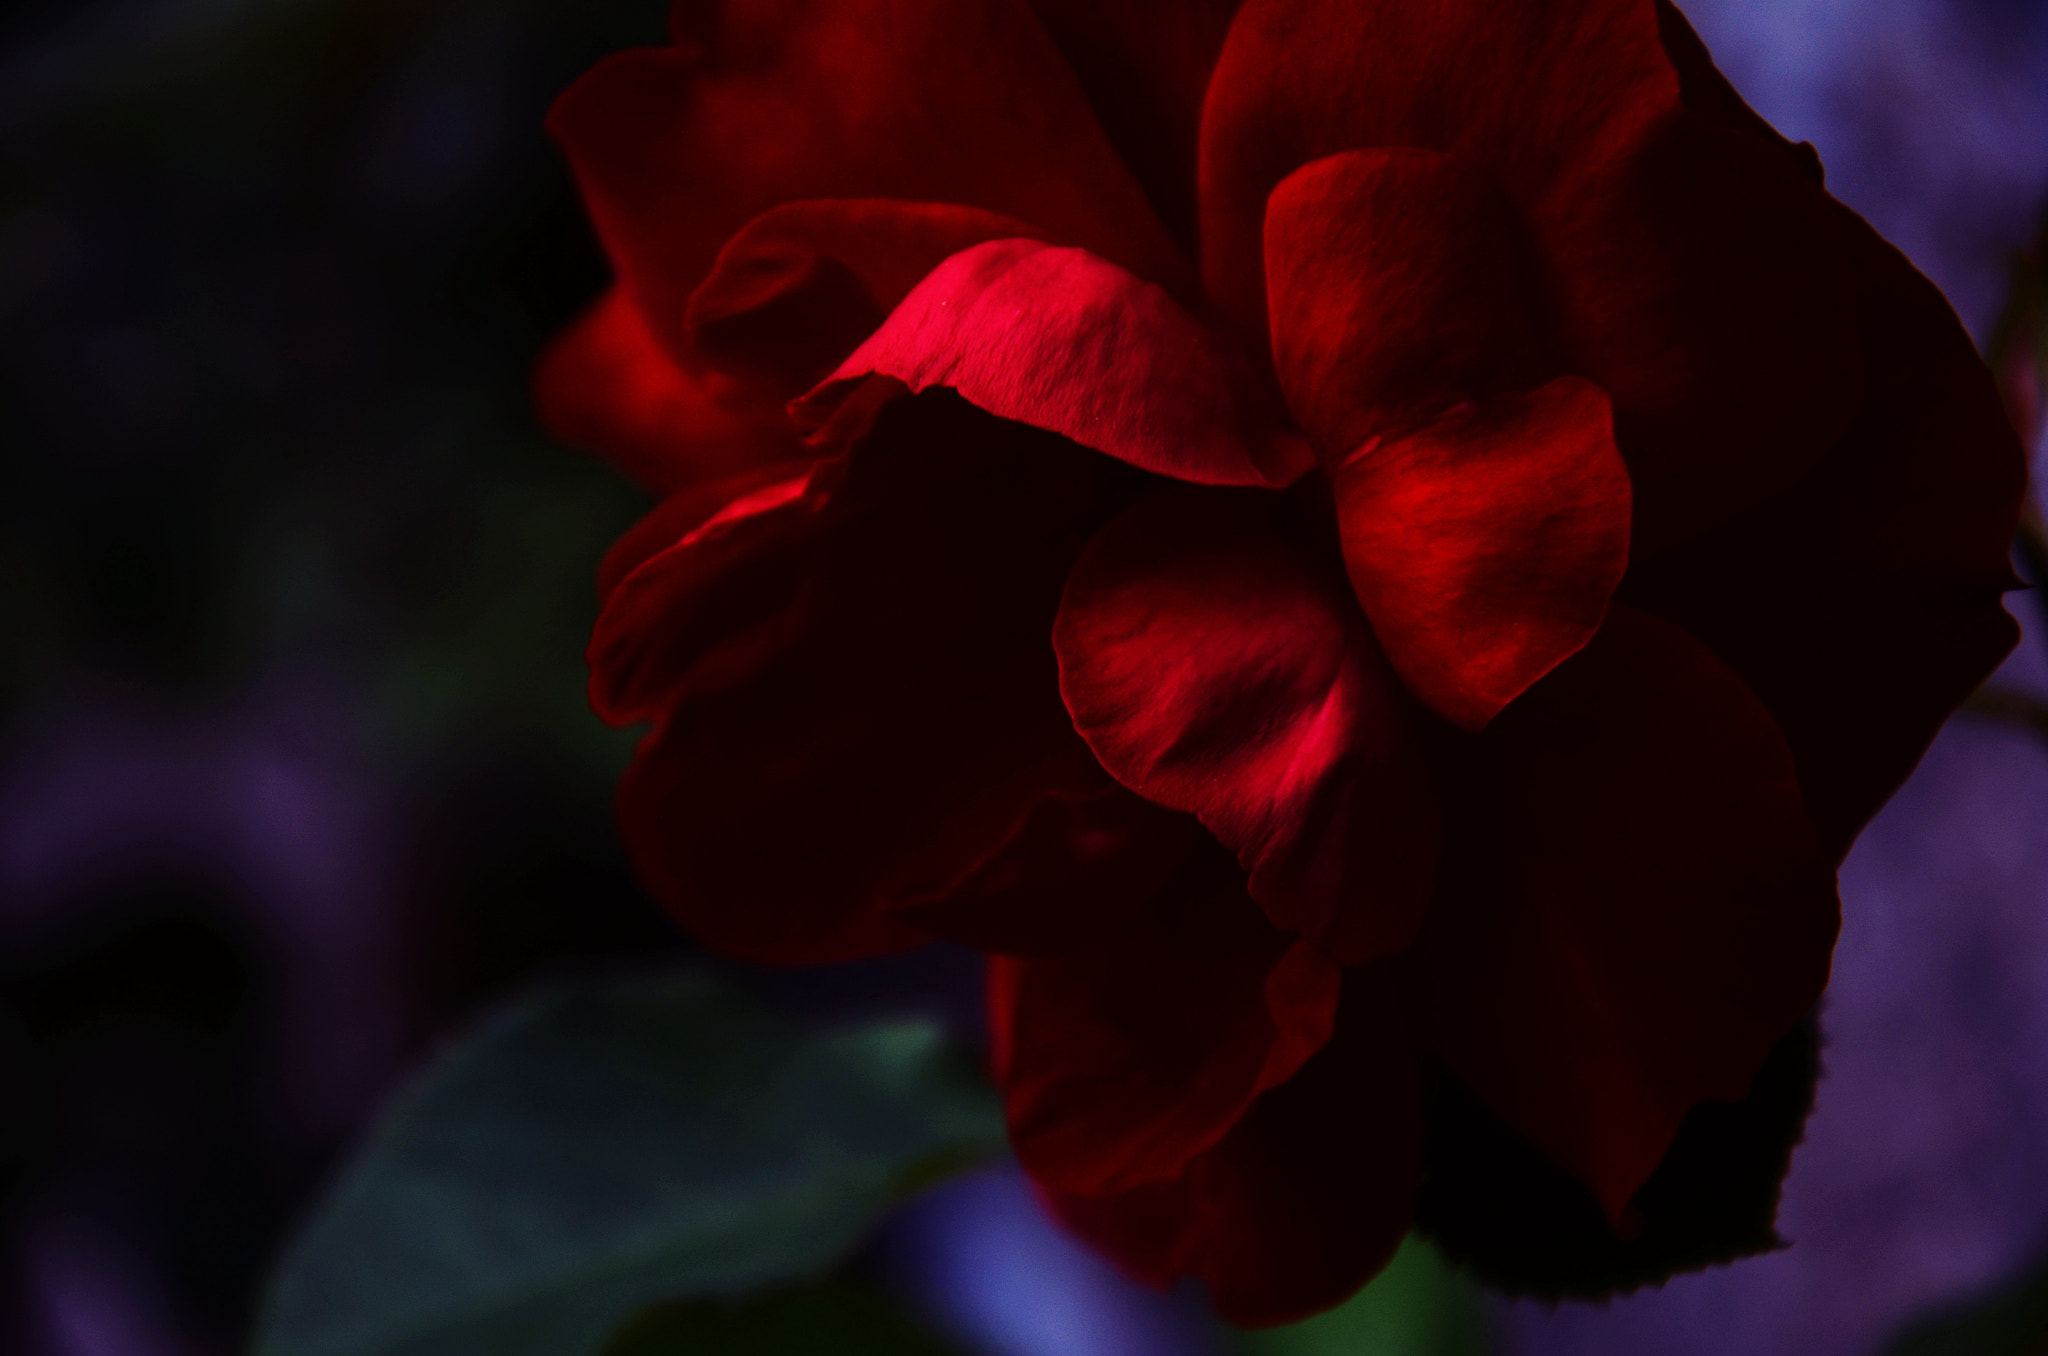 Photograph red as blood by Julia Kaufmann on 500px